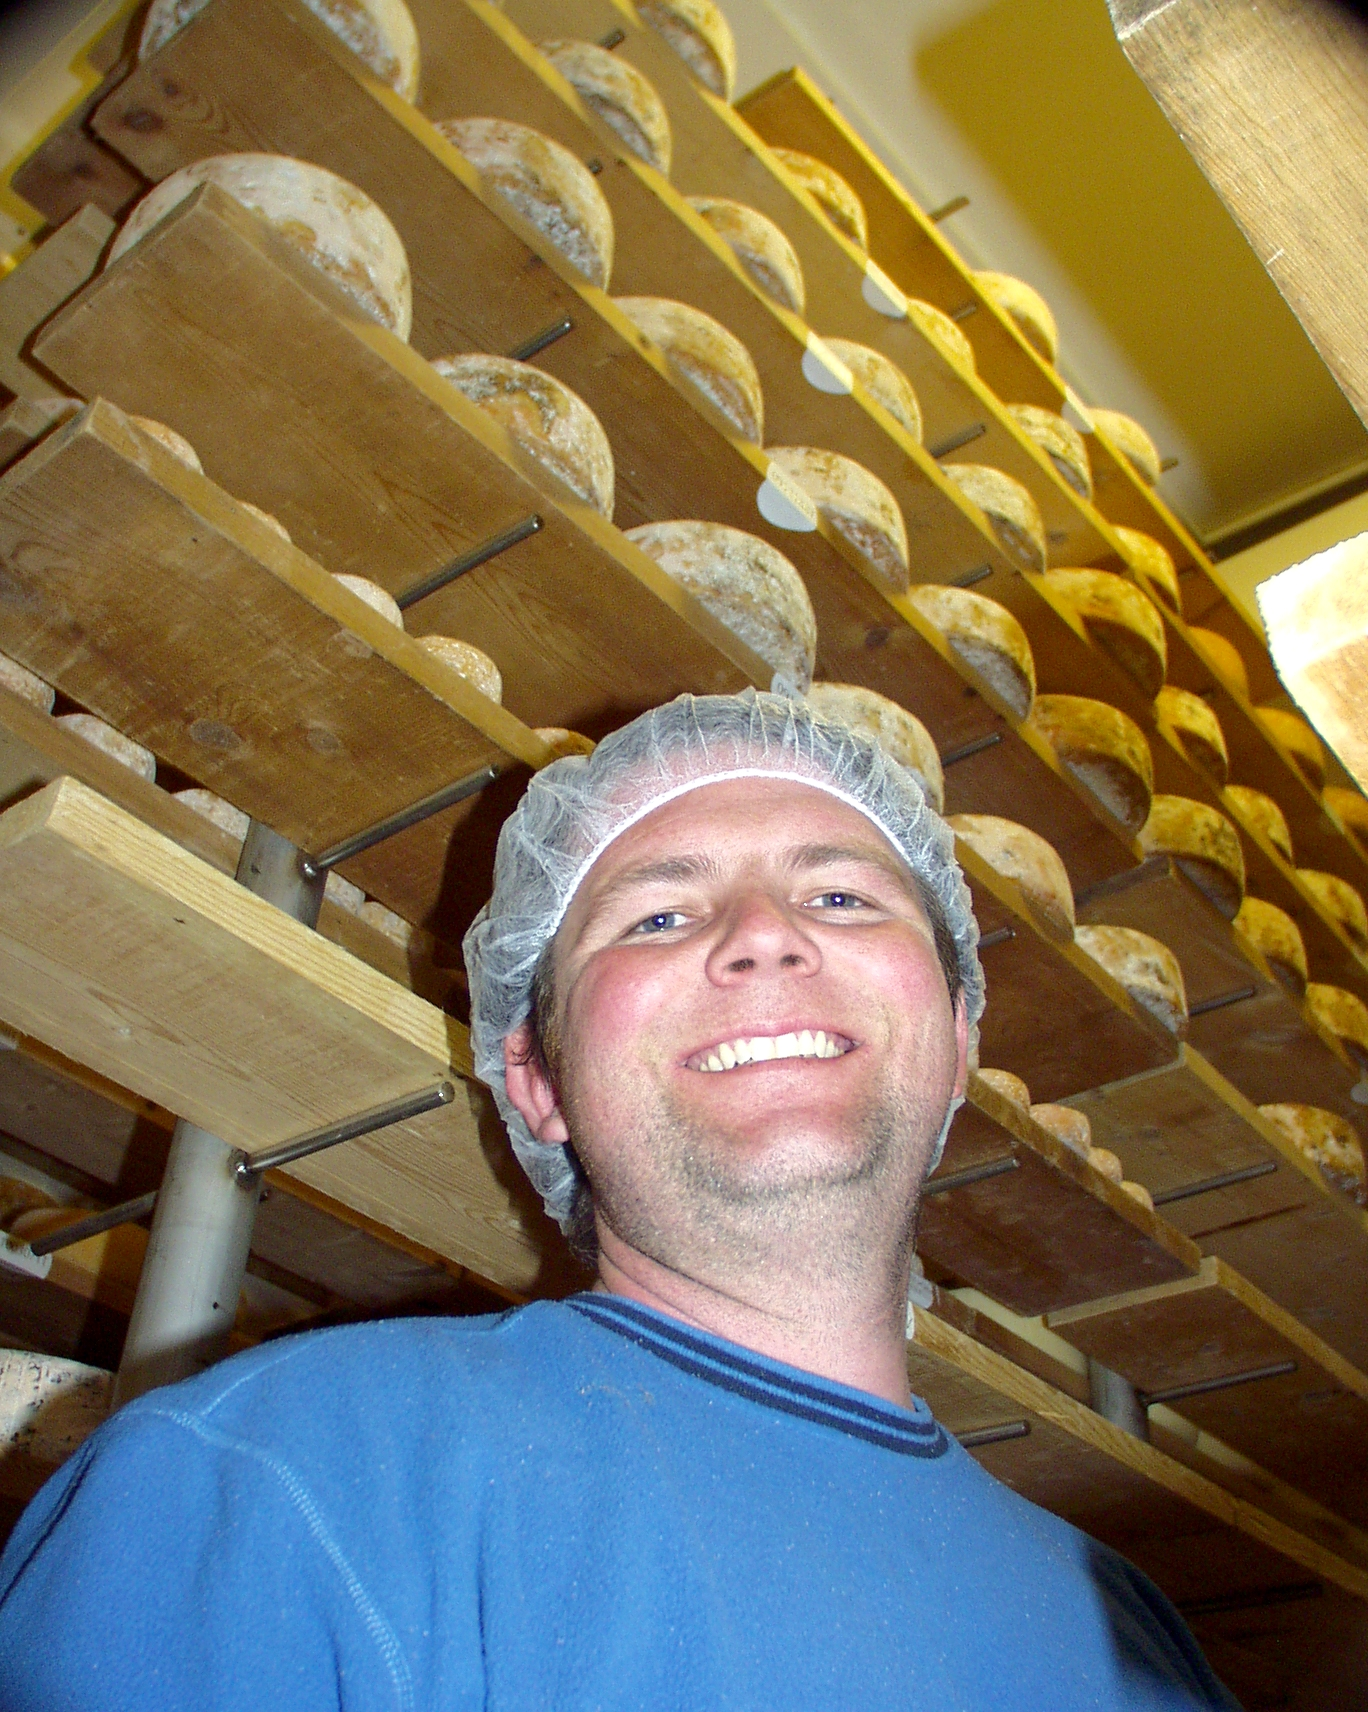 Cheese maker Matthew Day from Mt. Townsend Creamery in one of his four cheese caves in Port Townsend. Photo copyright 2010 by Zachary D. Lyons.